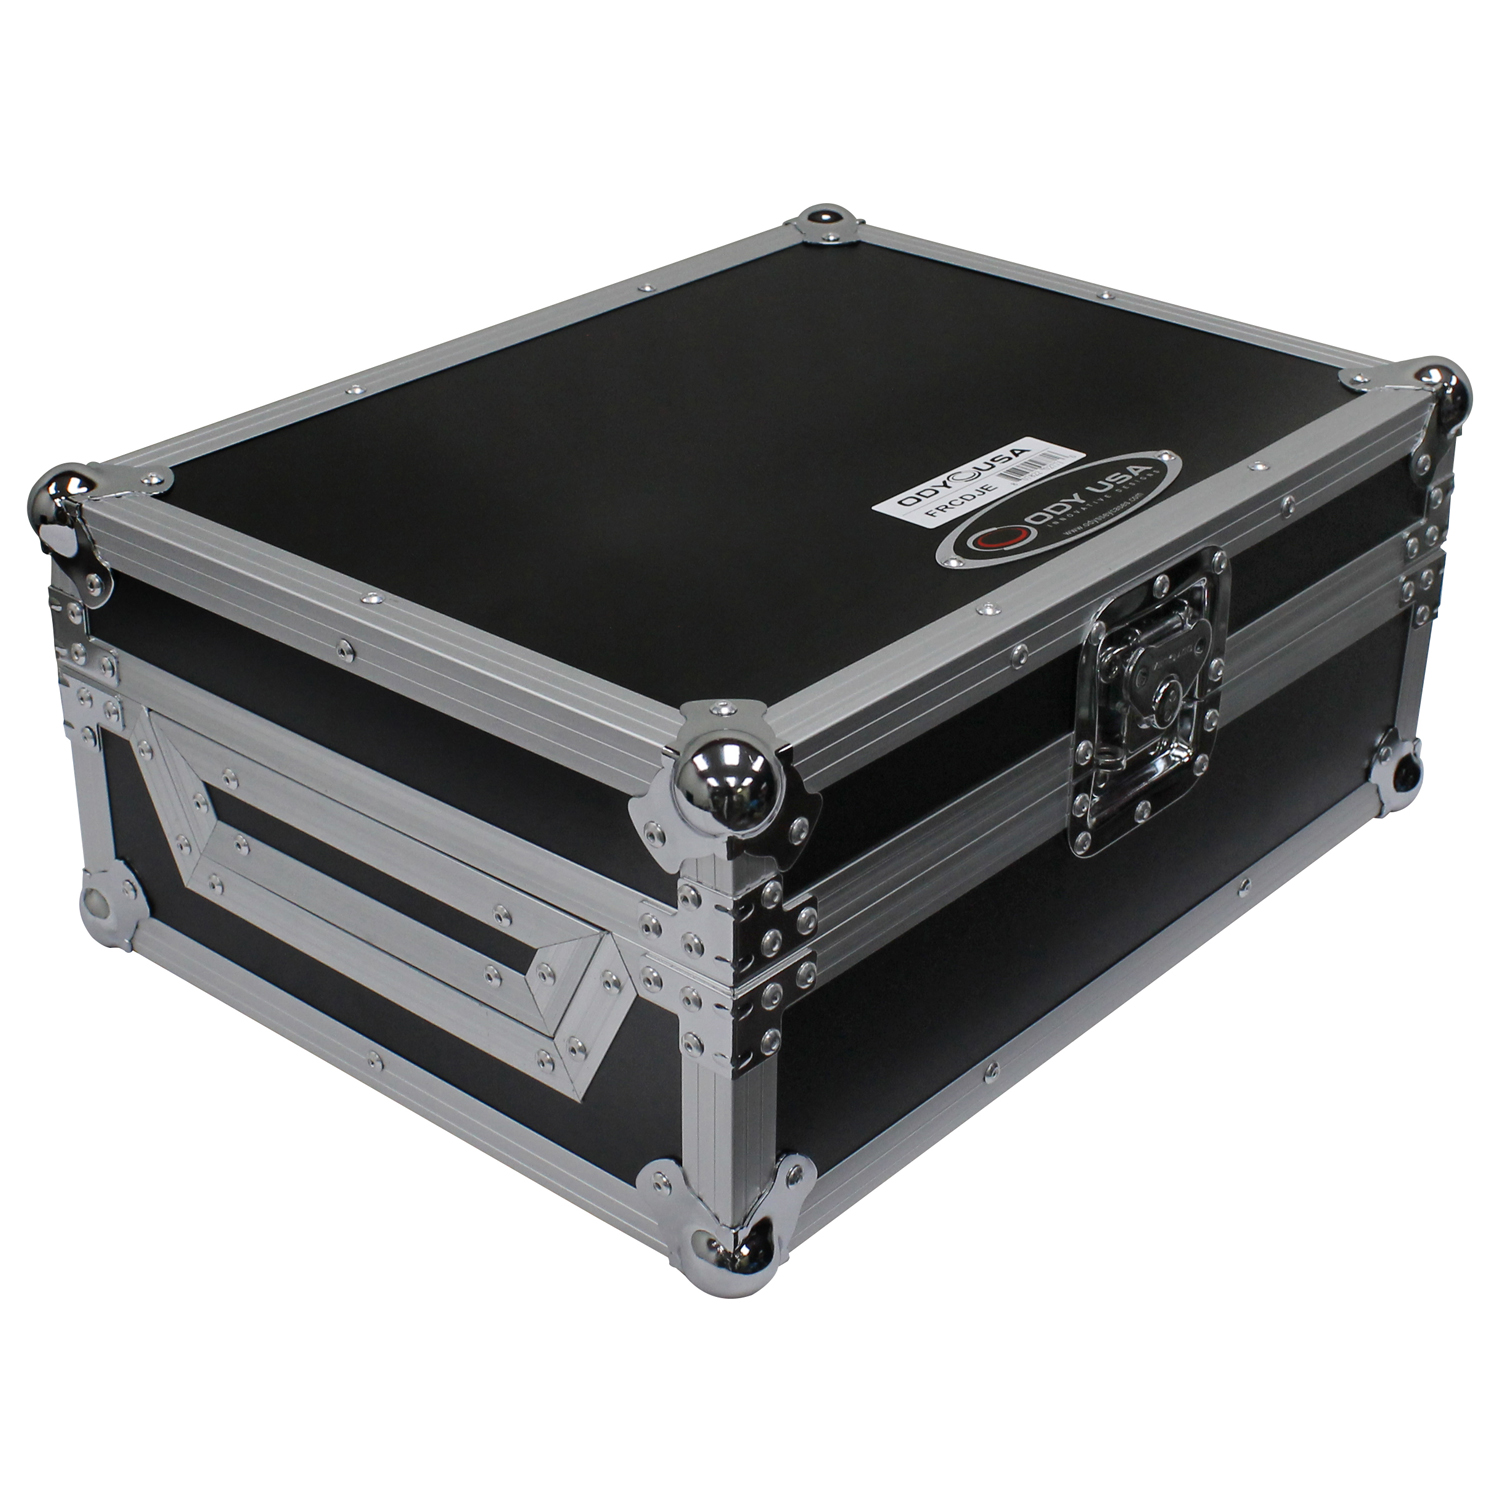 Universal Large Format Media Player Case | Odyssey Gear